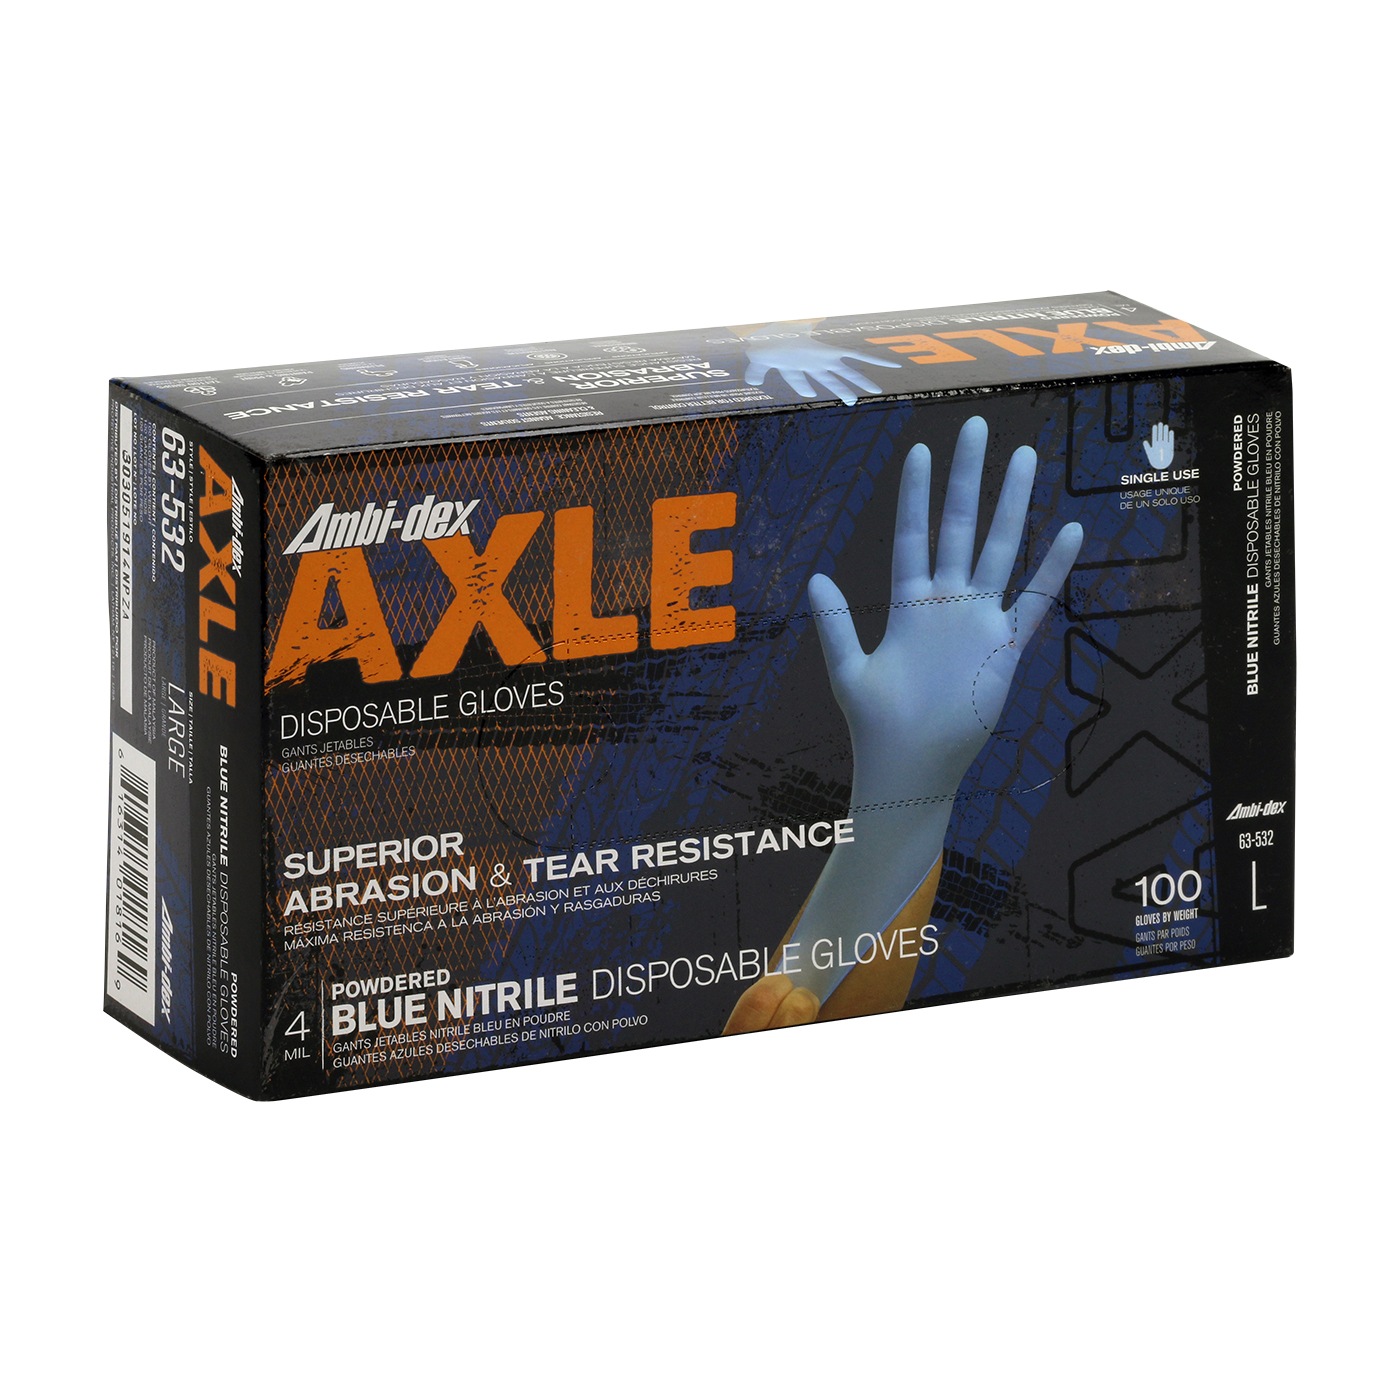 #63-532 PIP® Ambi-dex® Axle Disposable Nitrile Glove, Powdered with Textured Grip - 4 mil